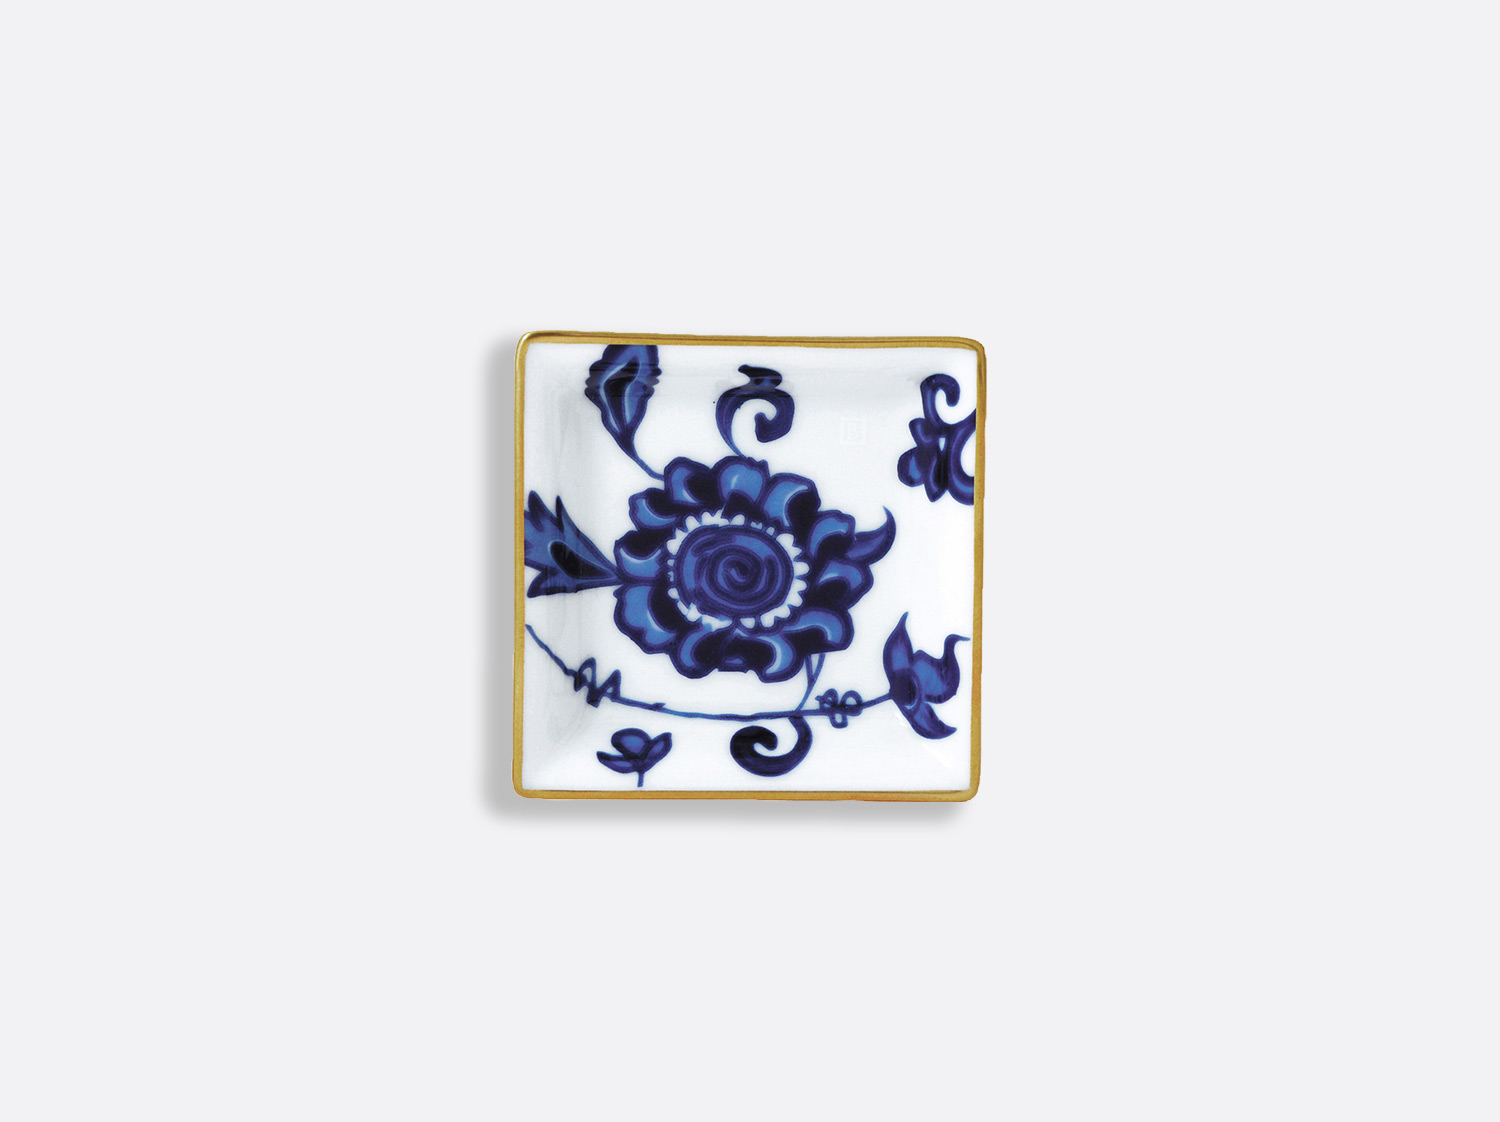 Vide-poches 8 x 8 cm en porcelaine de la collection Prince bleu Bernardaud